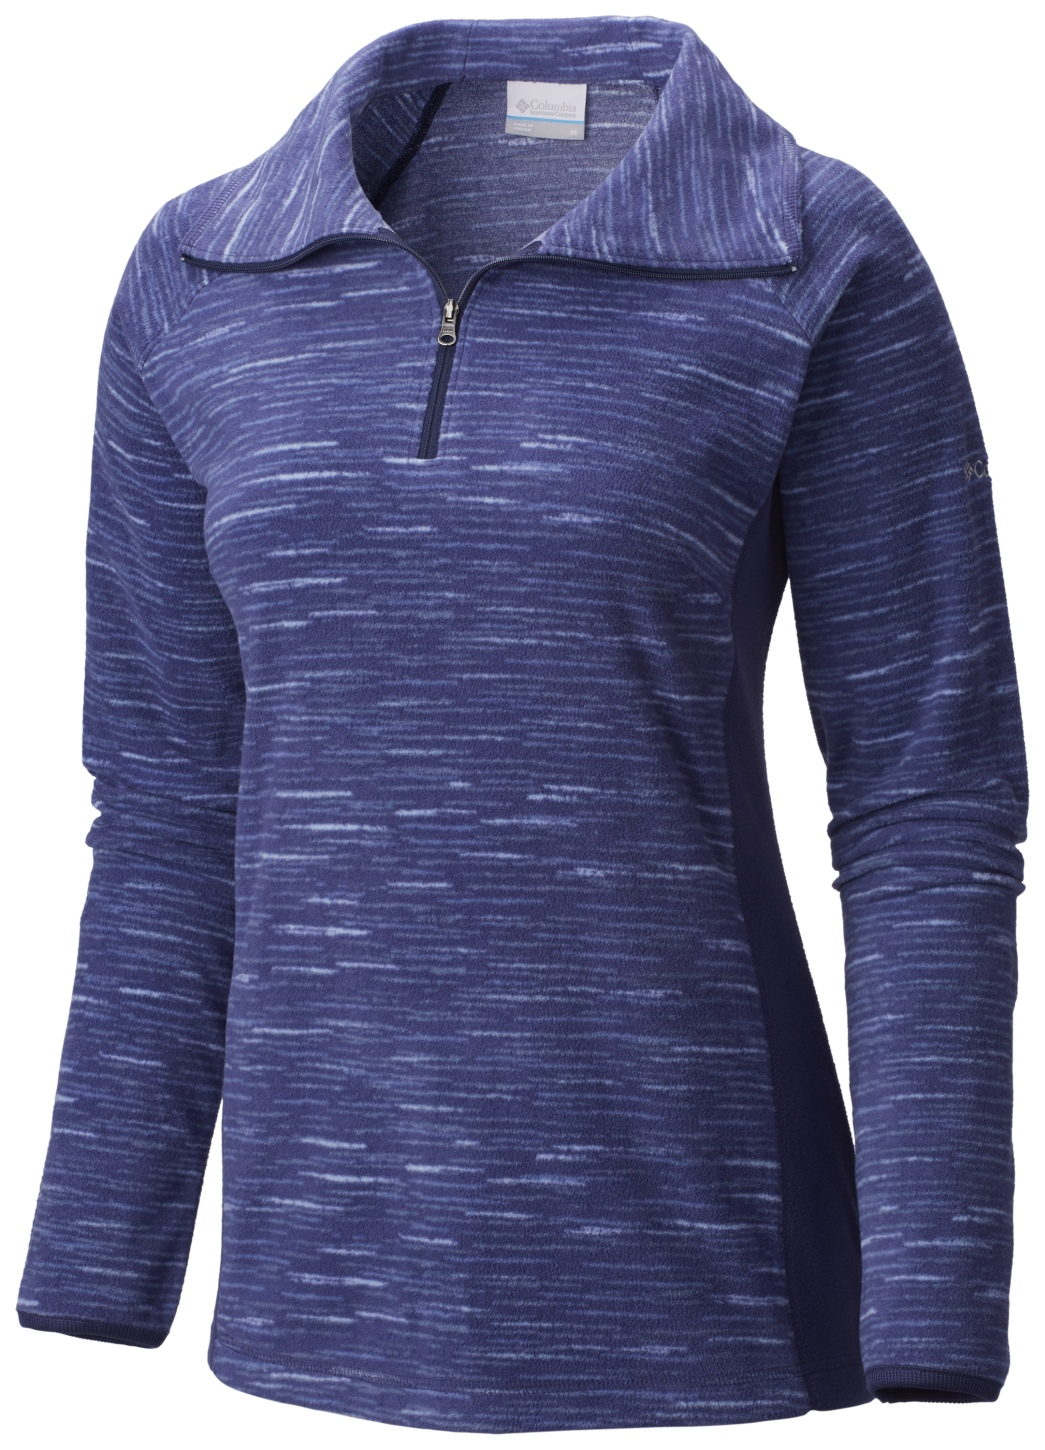 Columbia Women's Glacial Fleece III Print Half Zip Top Nightshade Strata-30